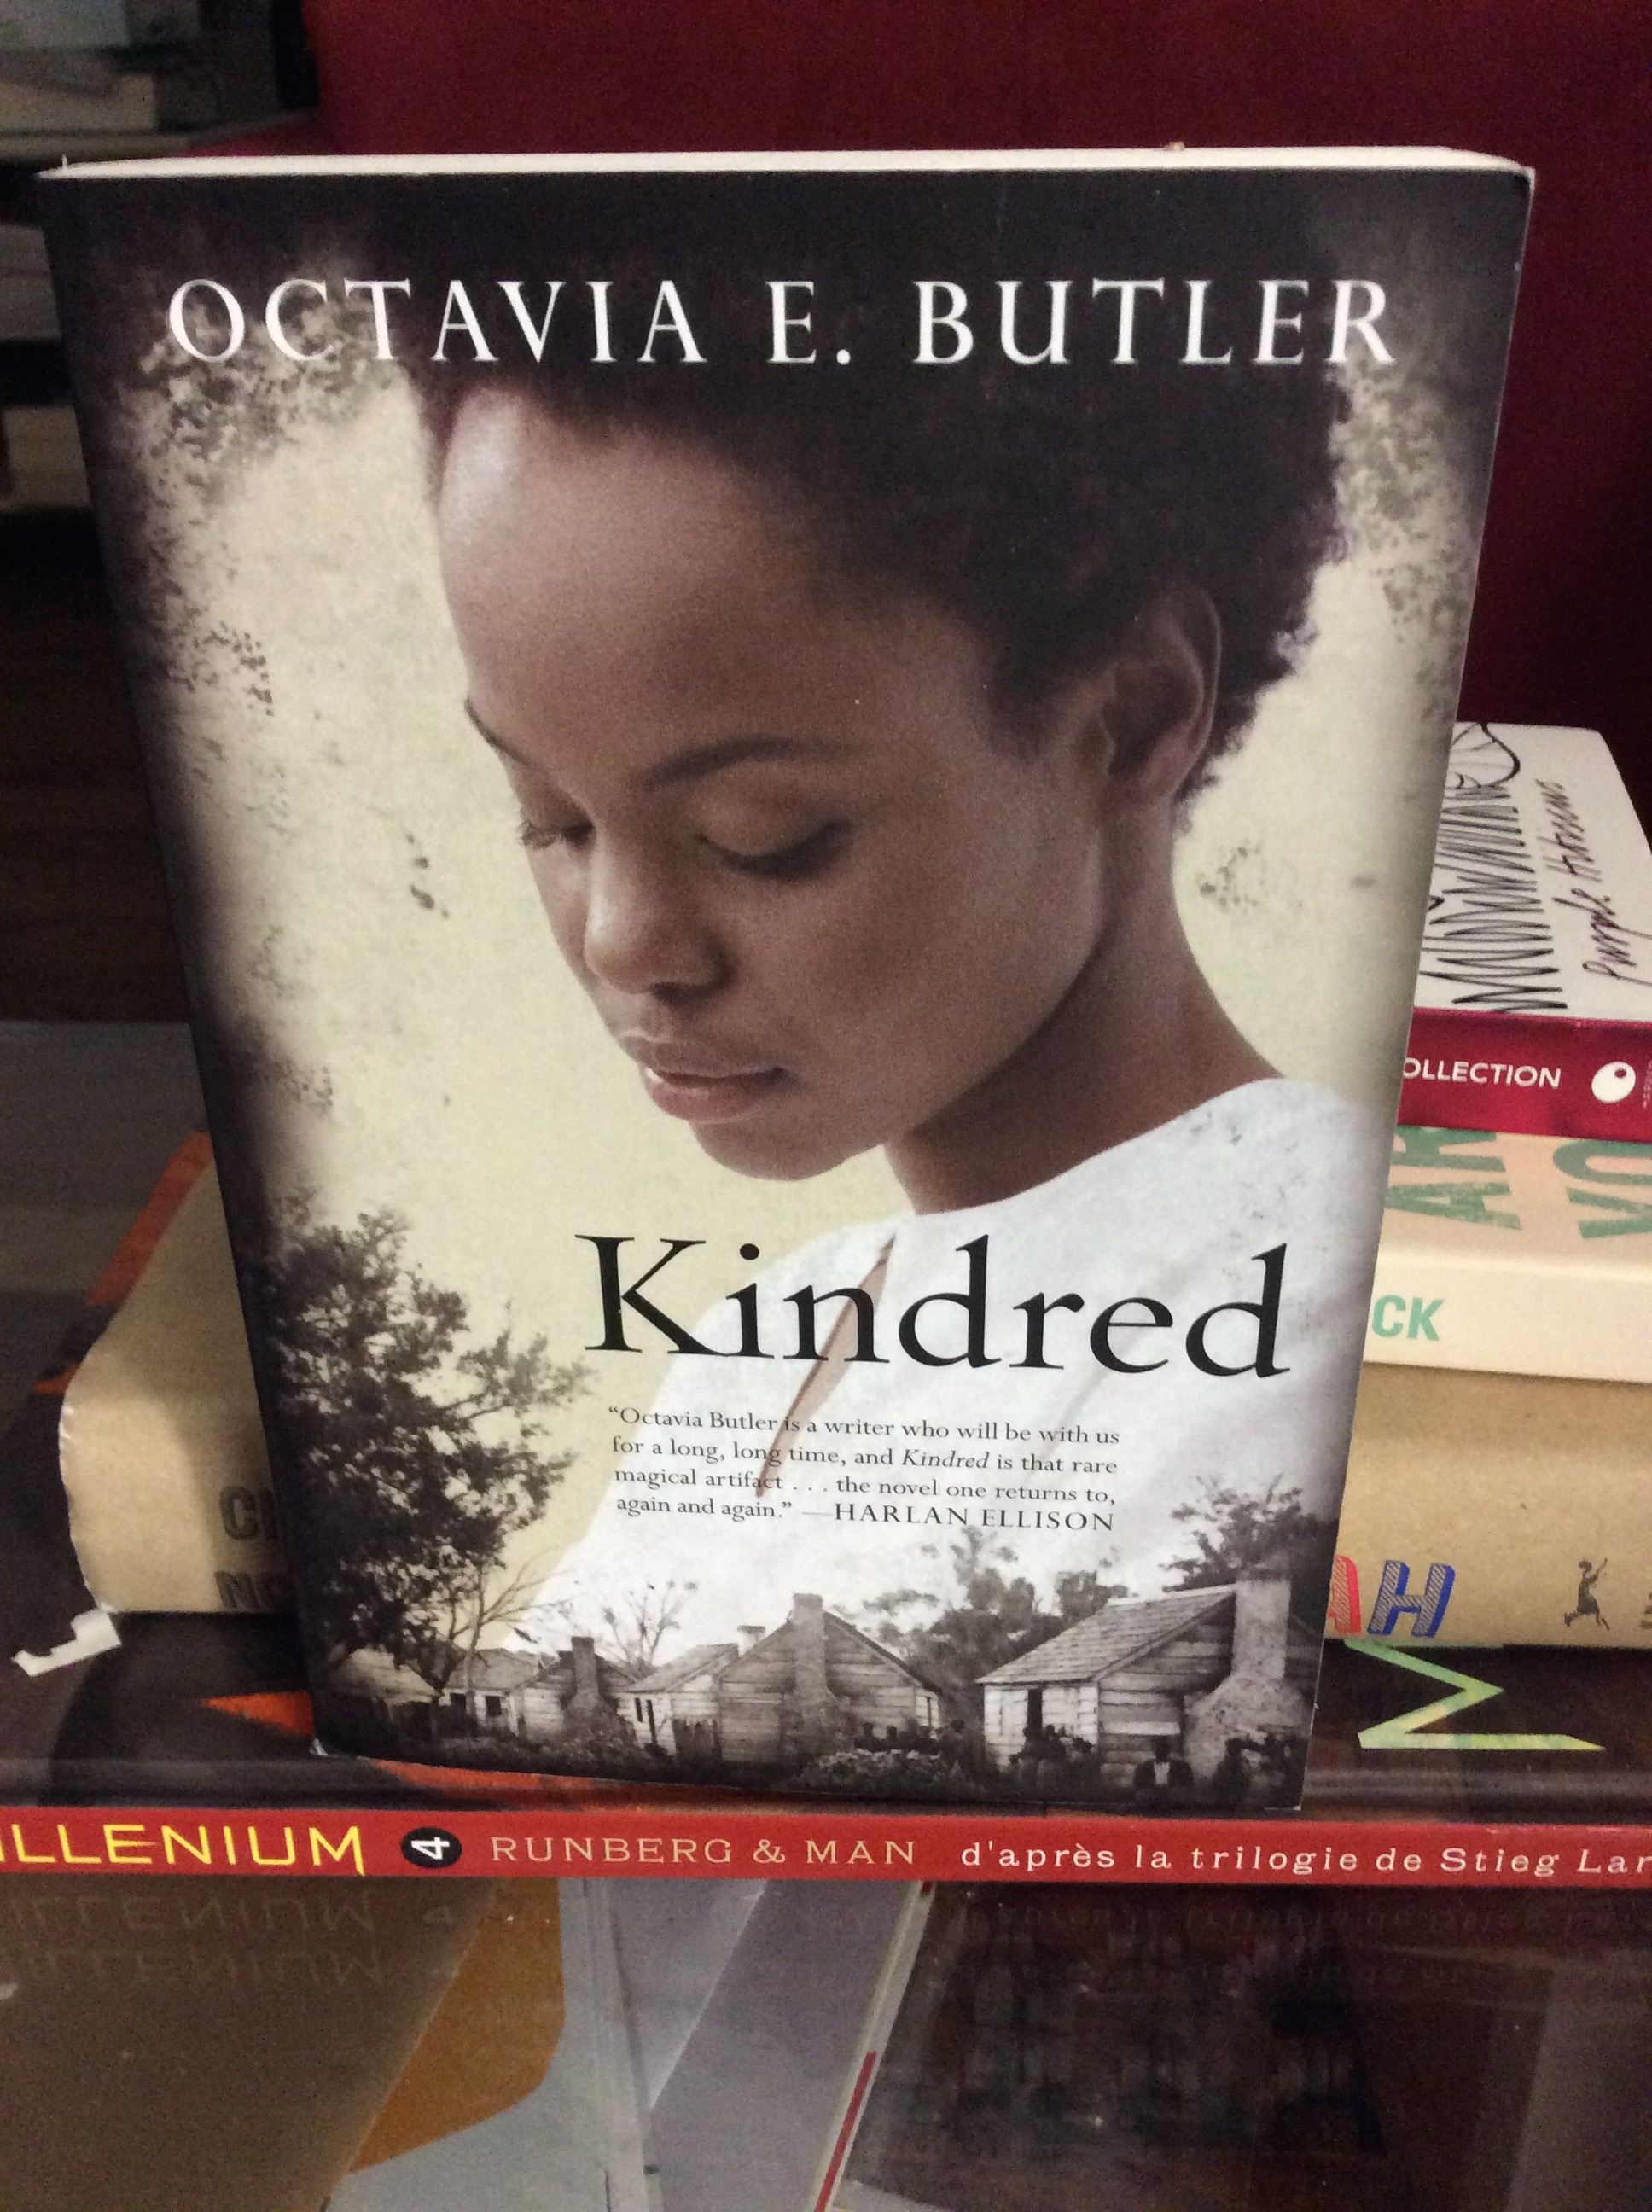 octavia e butler essays An introduction to kindred by octavia e butler learn about the book and the historical context in which it was written.